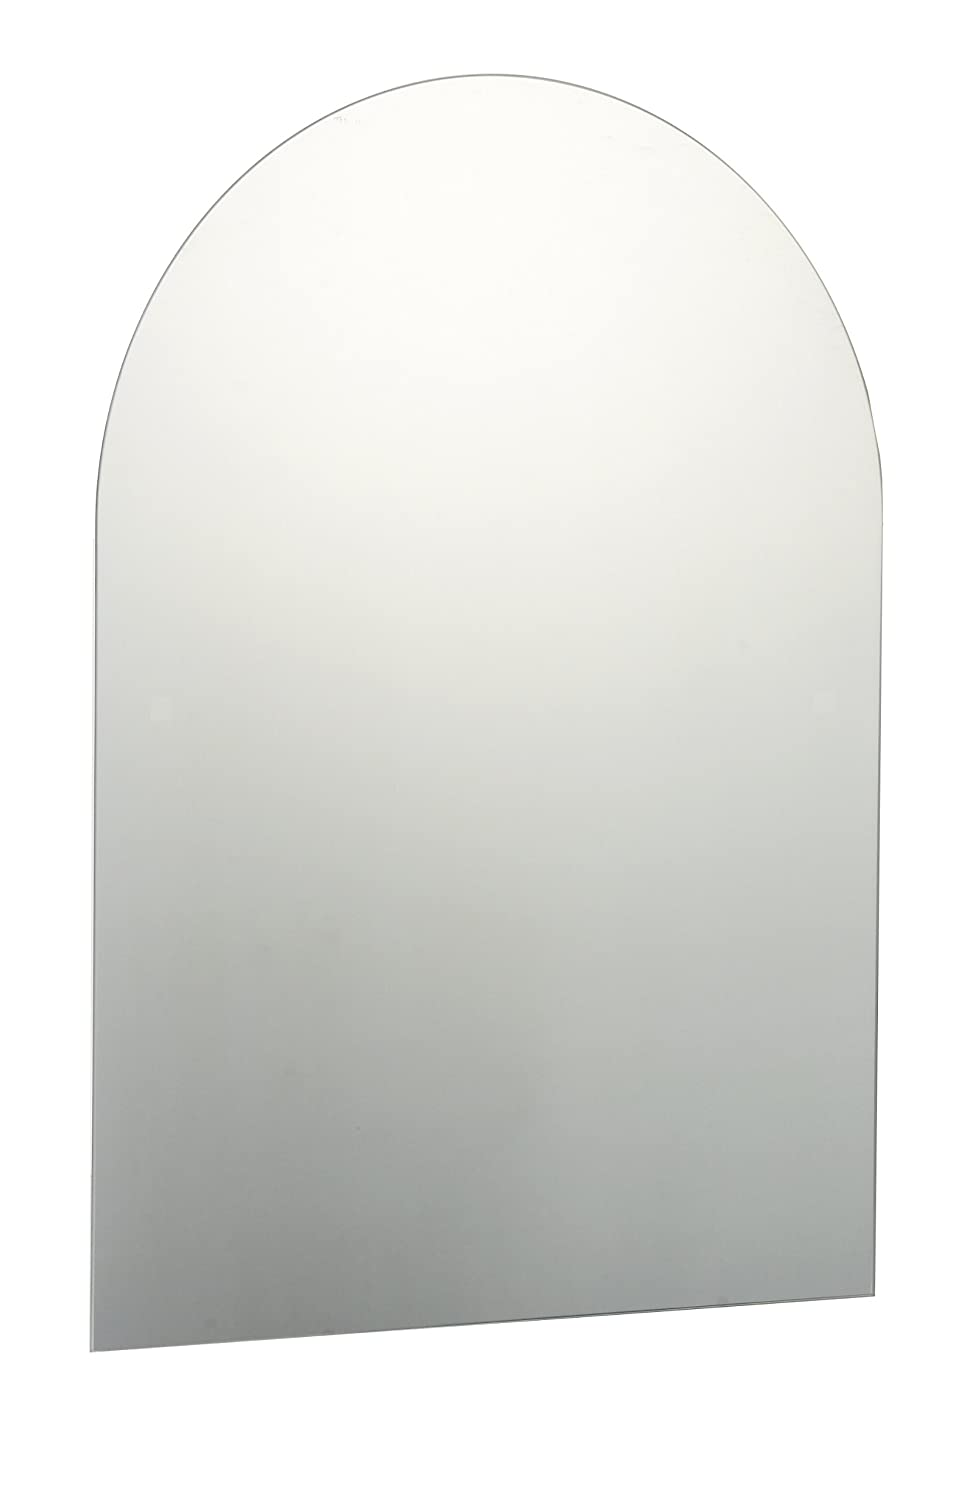 70 X 50cm Plain Frameless Bathroom Arched Mirror With Wall Fixings Amazoncouk Kitchen Home